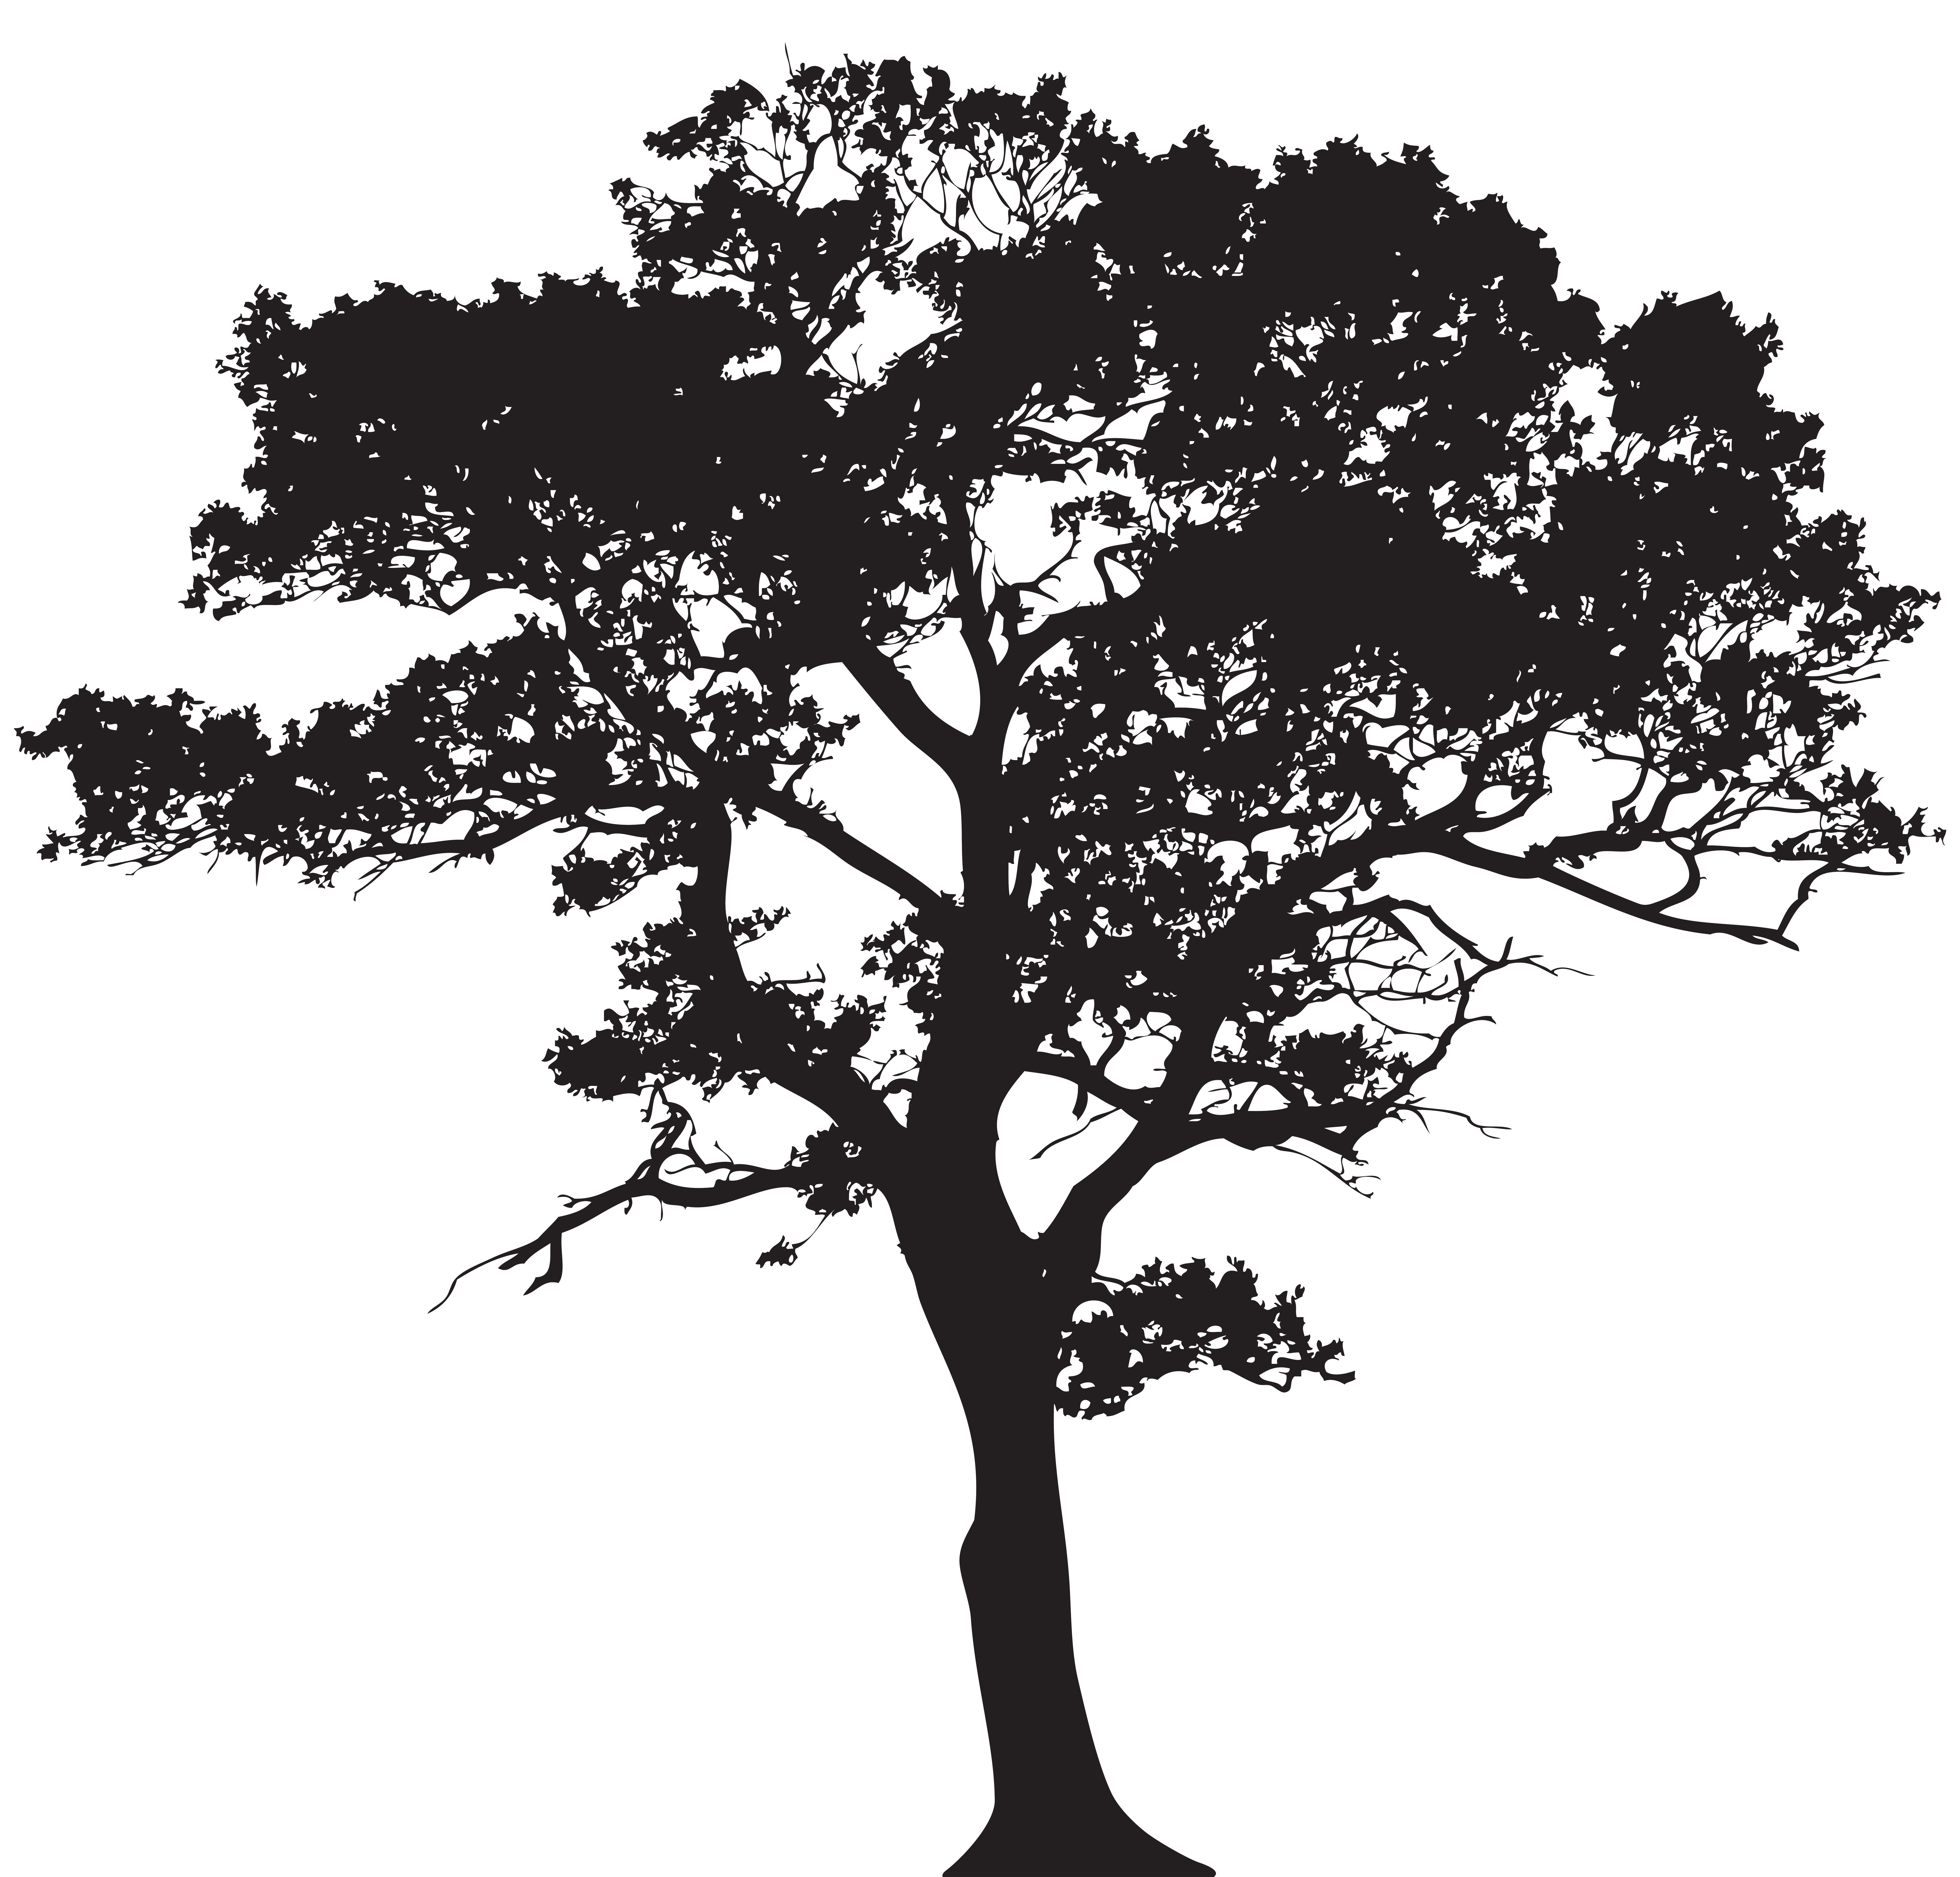 Silhouette Tree Png Clip Art Image Gallery Yopriceville High Quality Images And Transparent Png Tree Silhouette Tattoo Silhouette Clip Art Tree Silhouette